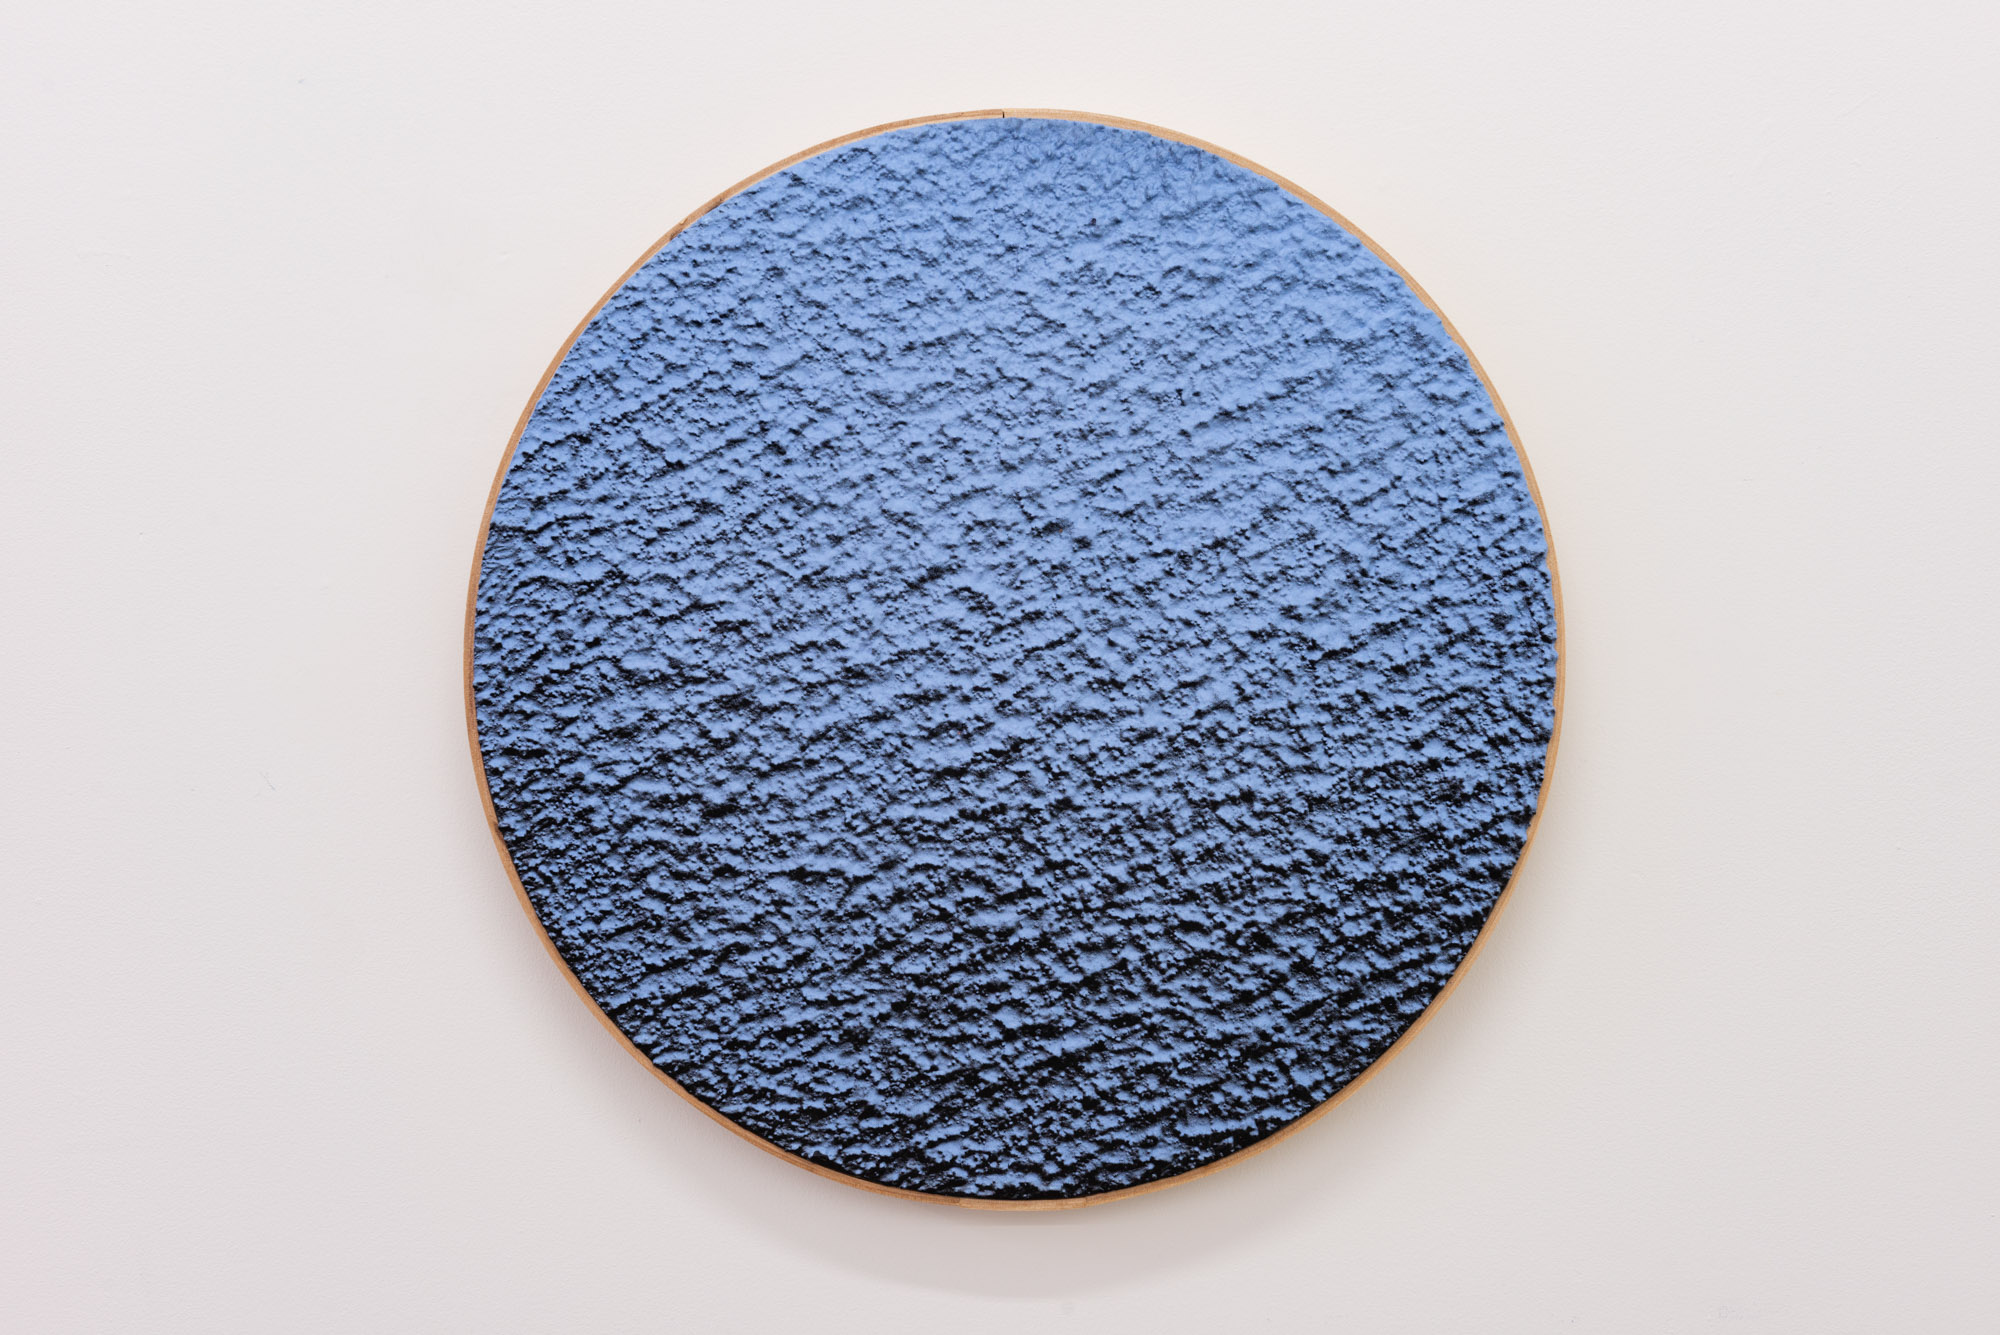 """Pierre Julien,  In the Deepest Oceans  - B004, 2018, stucco, acrylic and spray paint on wood panel, 16"""" diameter (41 cm)"""